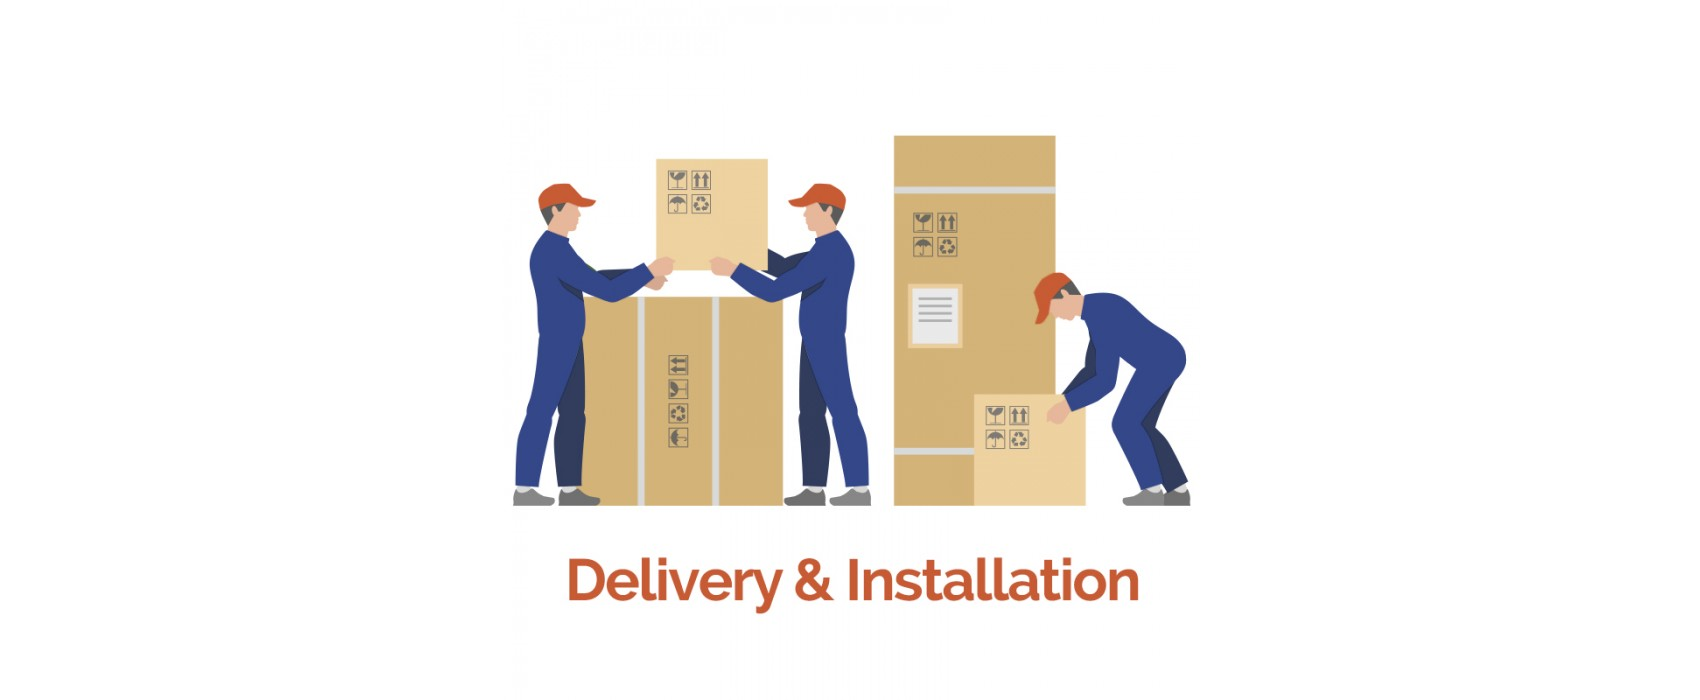 Delivery installation